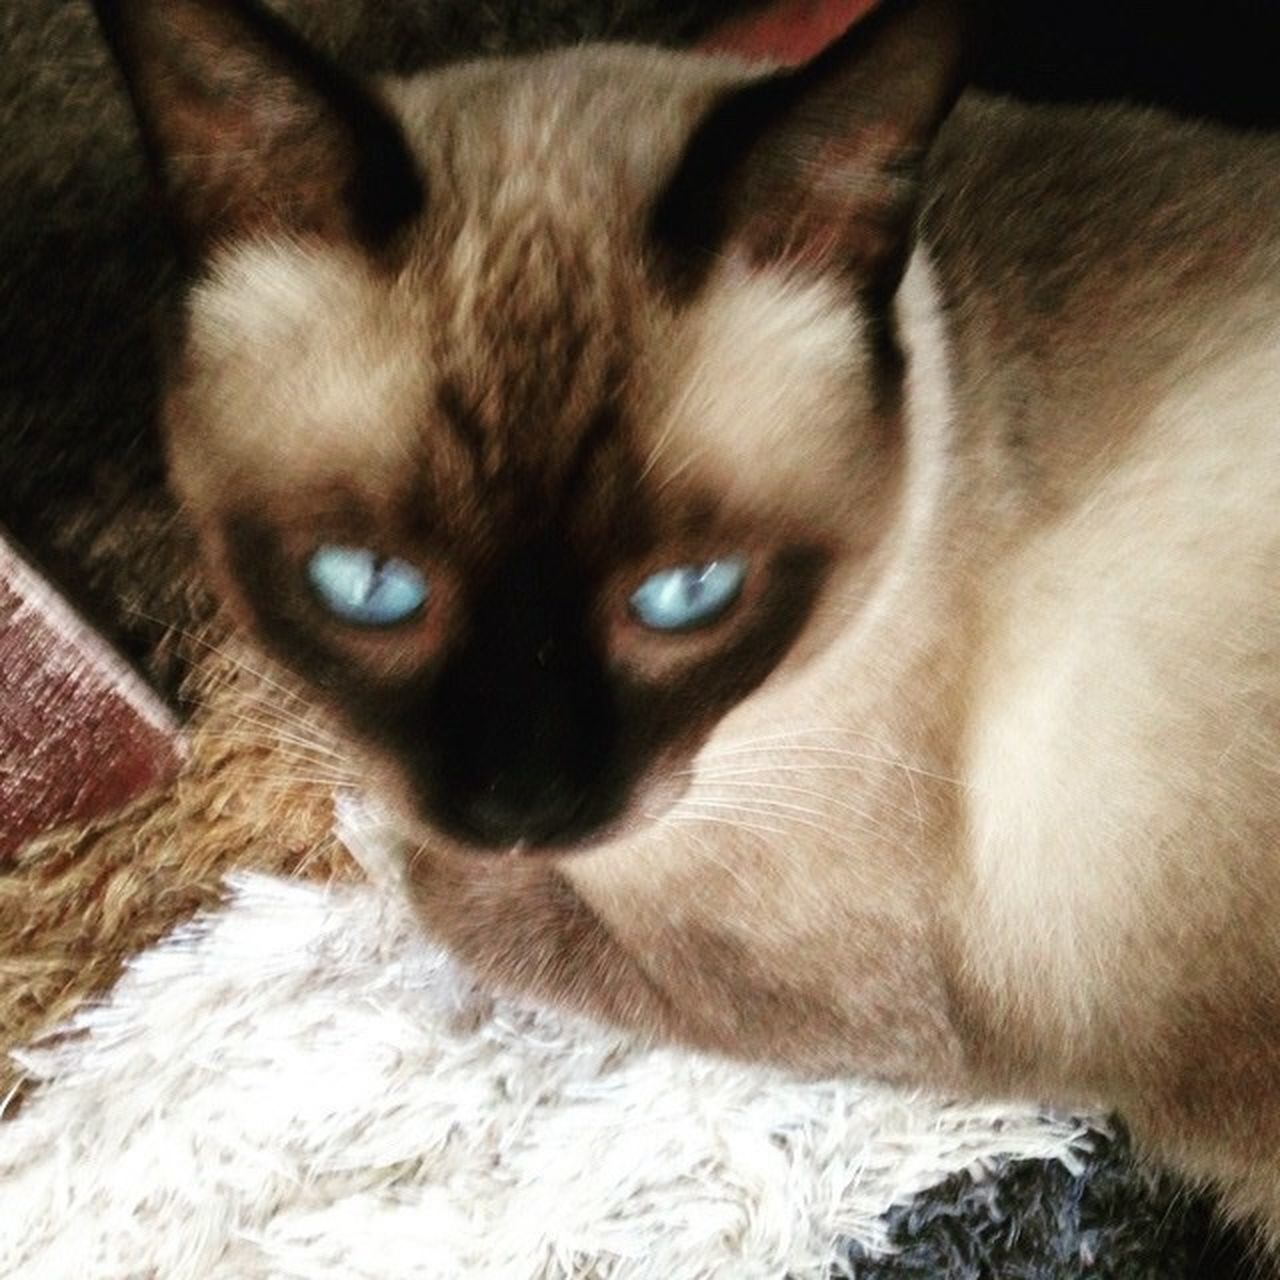 domestic cat, pets, feline, domestic animals, animal themes, one animal, mammal, cat, whisker, portrait, looking at camera, no people, yellow eyes, indoors, close-up, siamese cat, day